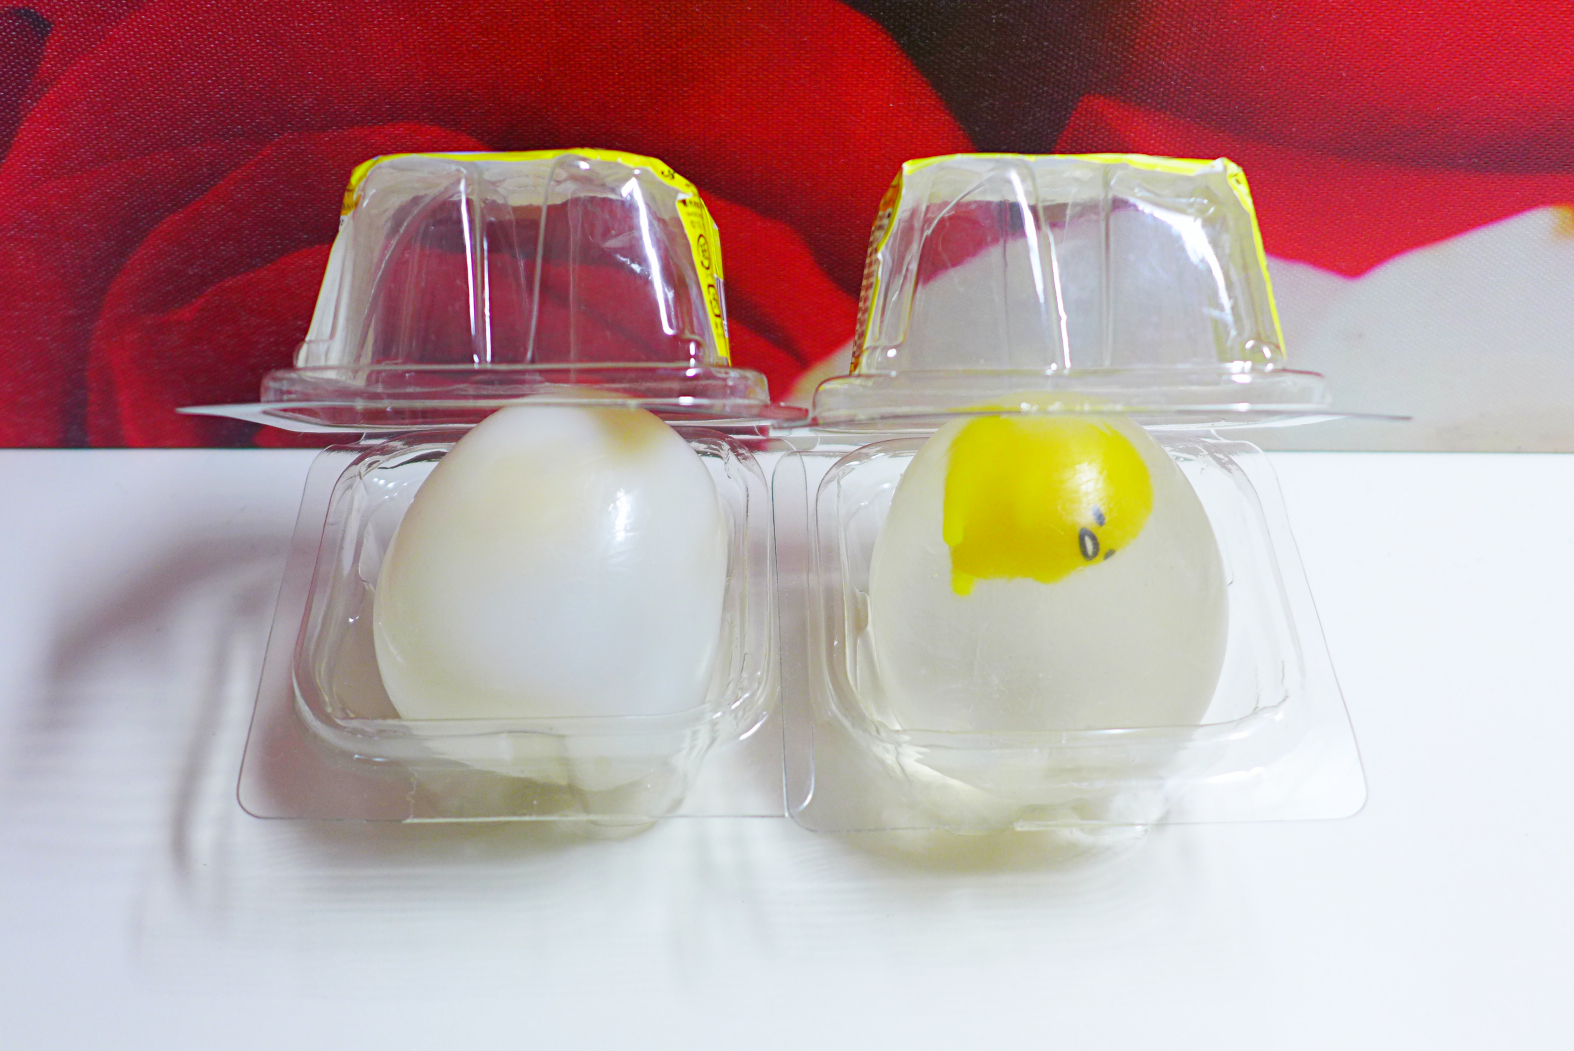 Sue s Cutie Closet : Squishy Update & Video Close-Up: Gudetama Water Egg Squishy